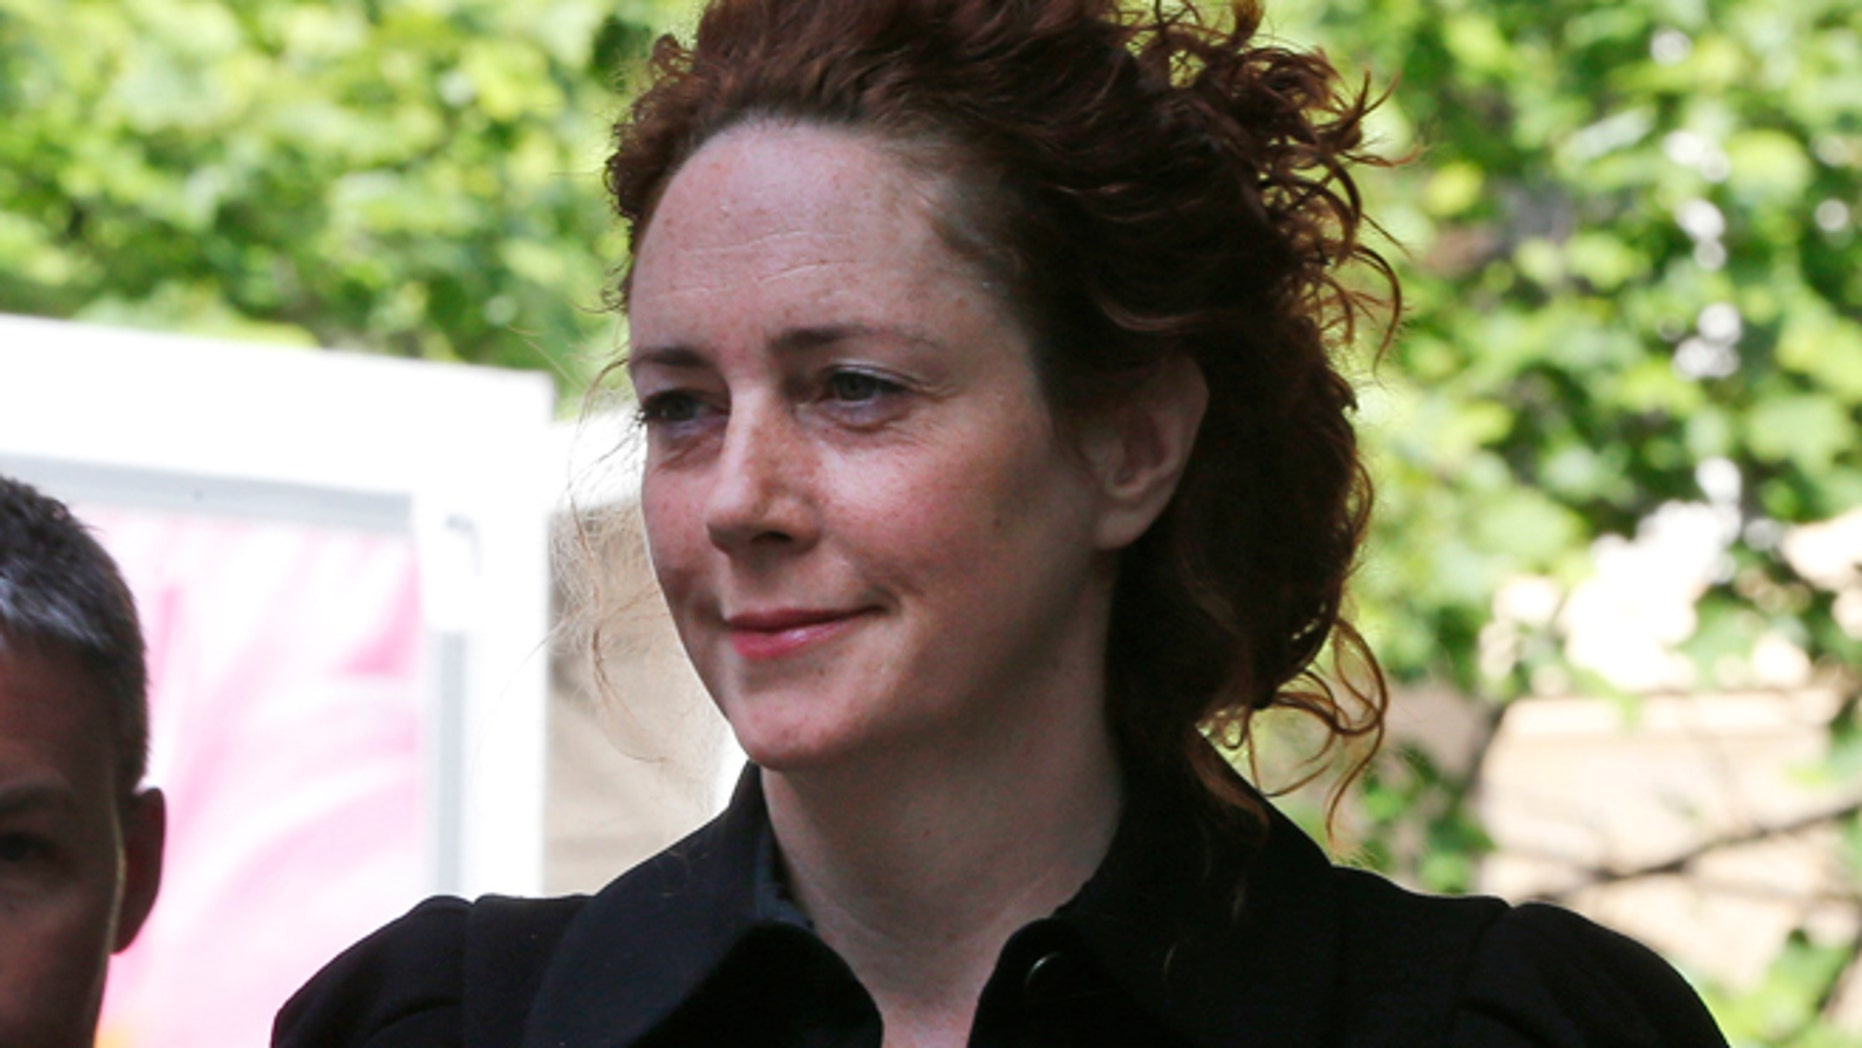 June 5, 2013: Former News International chief executive Rebekah Brooks arrives at a court in London.